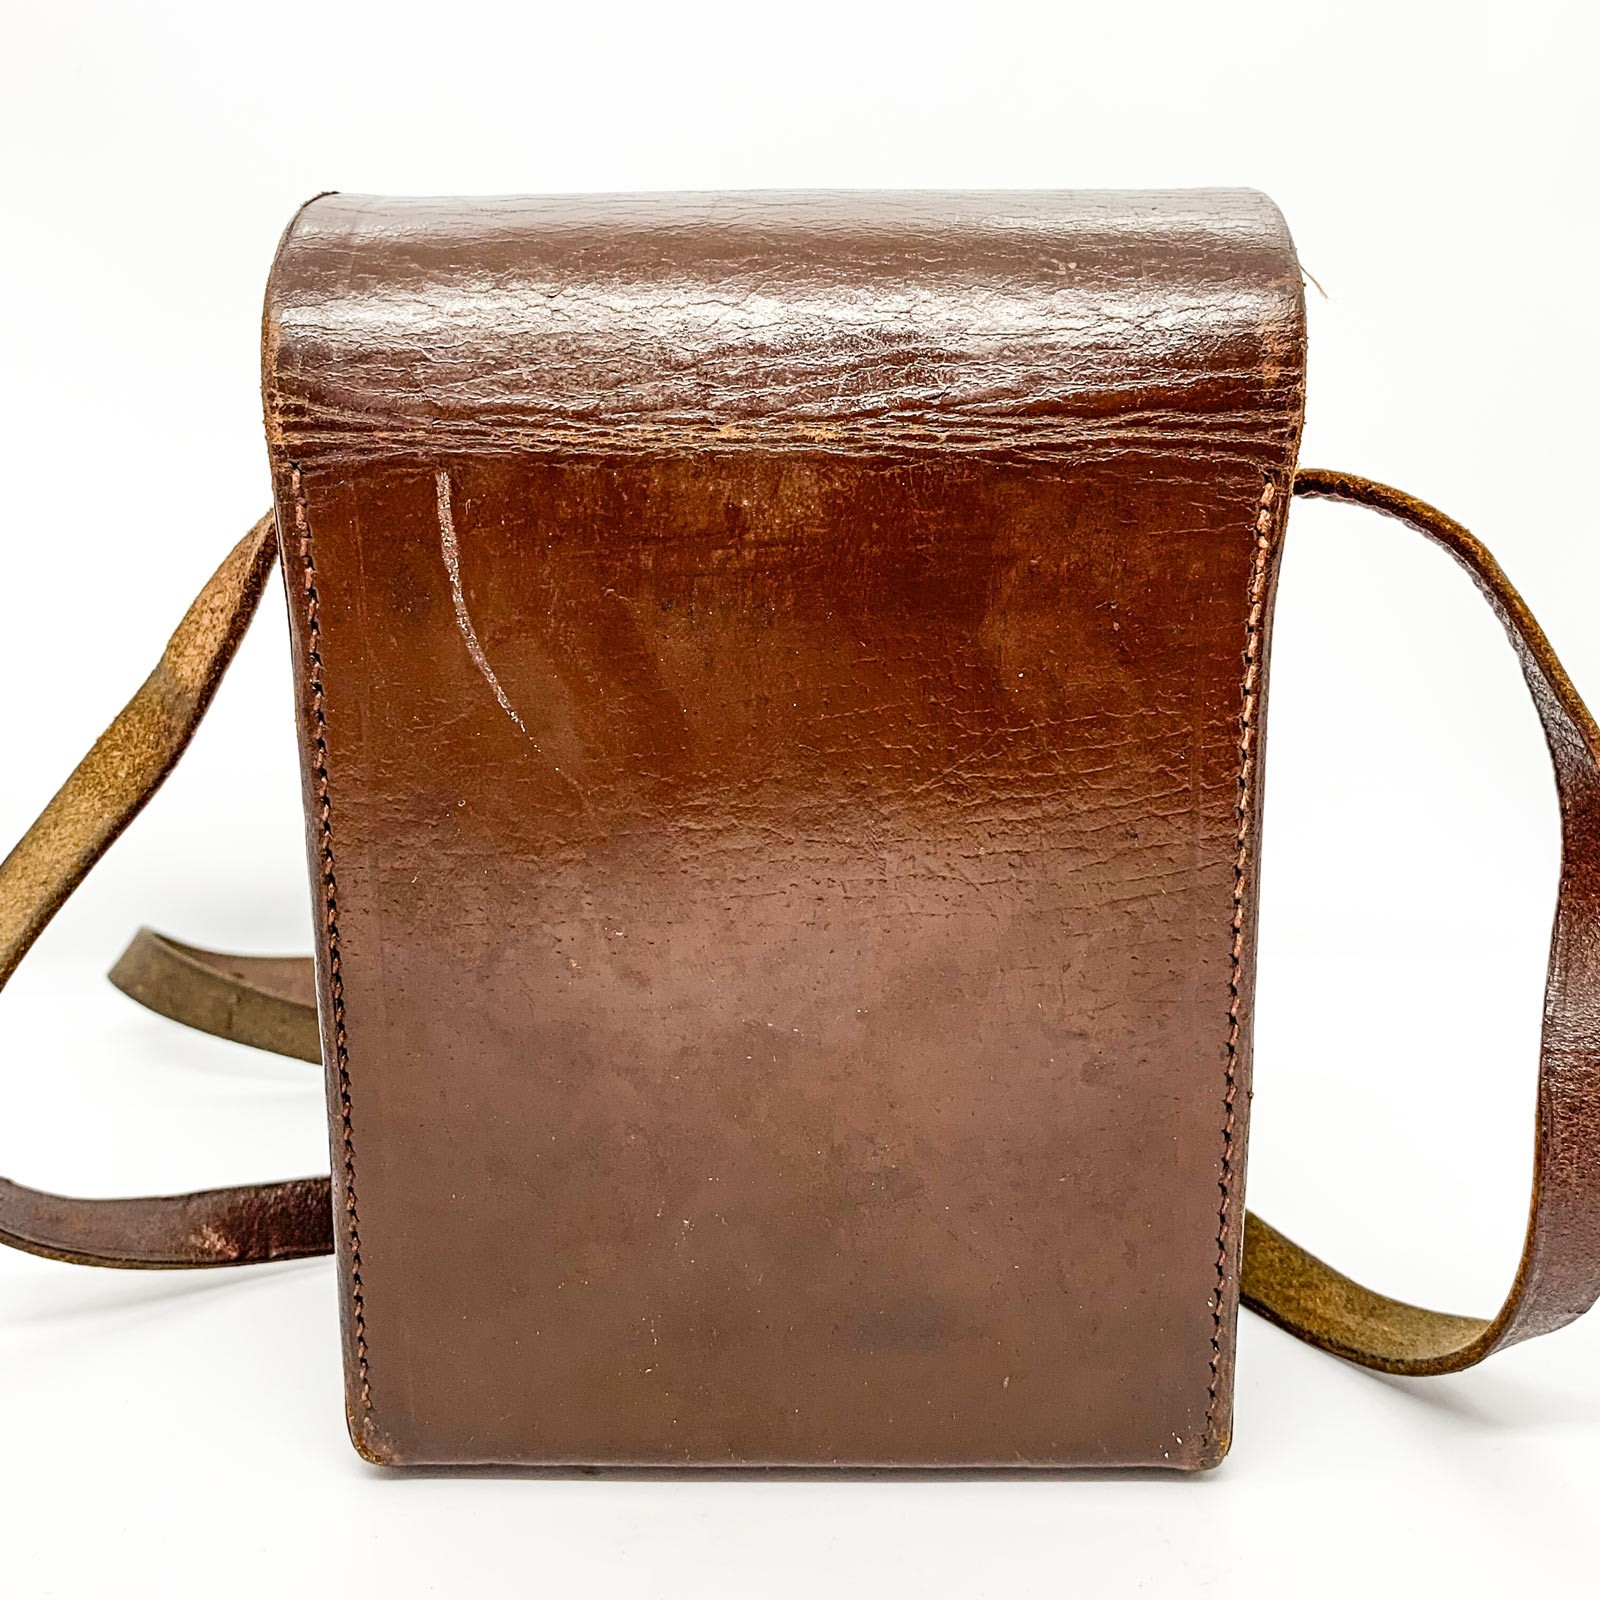 Bell & Howell Vintage Leather case on white background